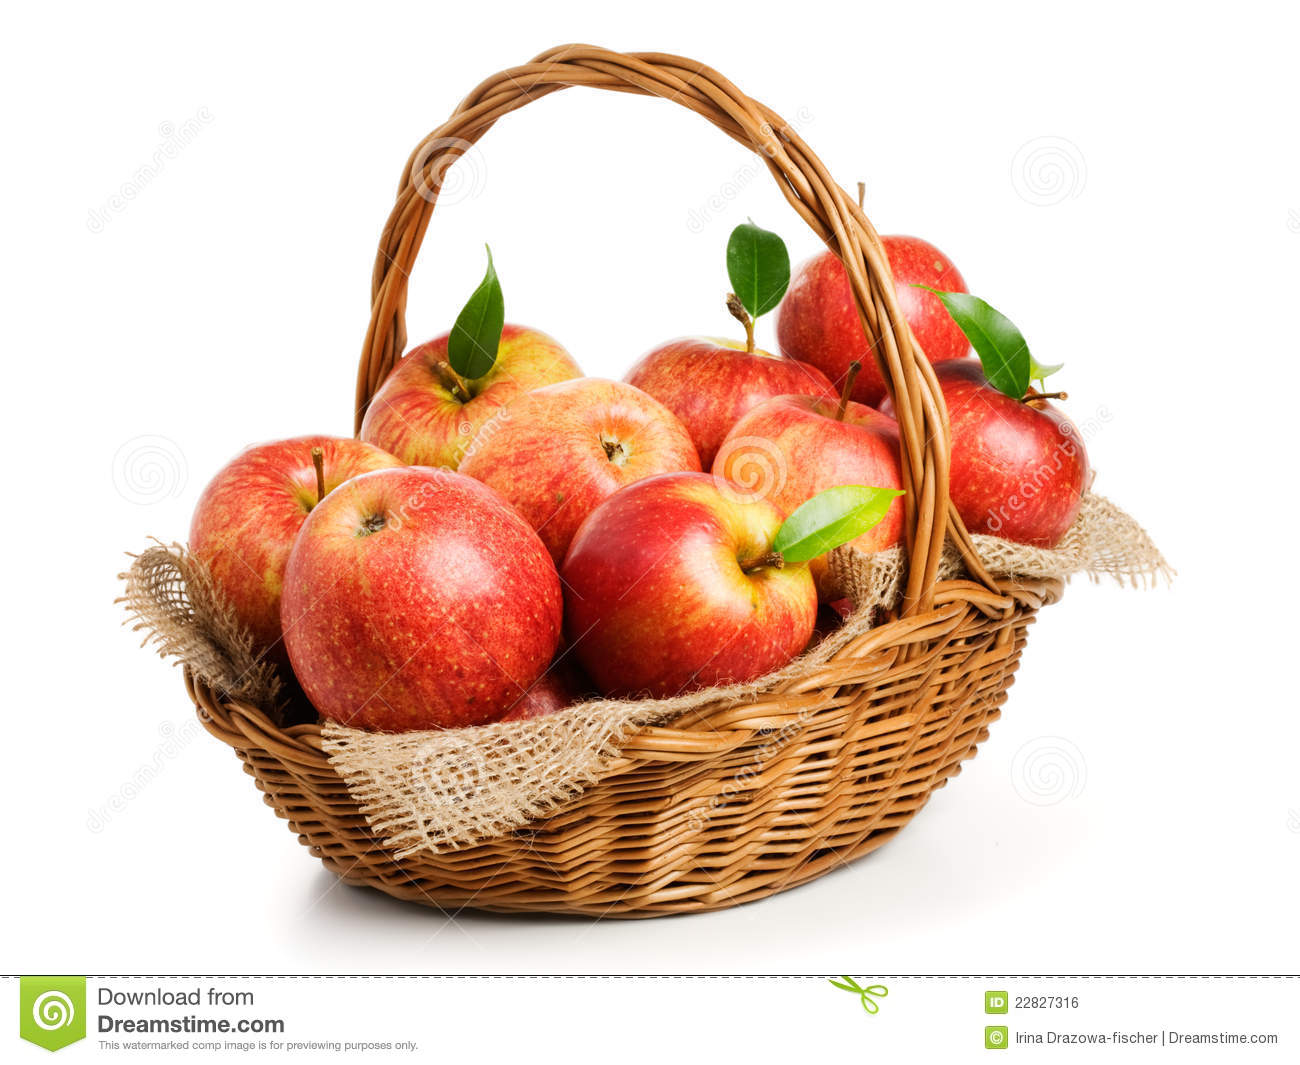 Jonagold Apples In A Basket Royalty Free Stock Image - Image: 22827316